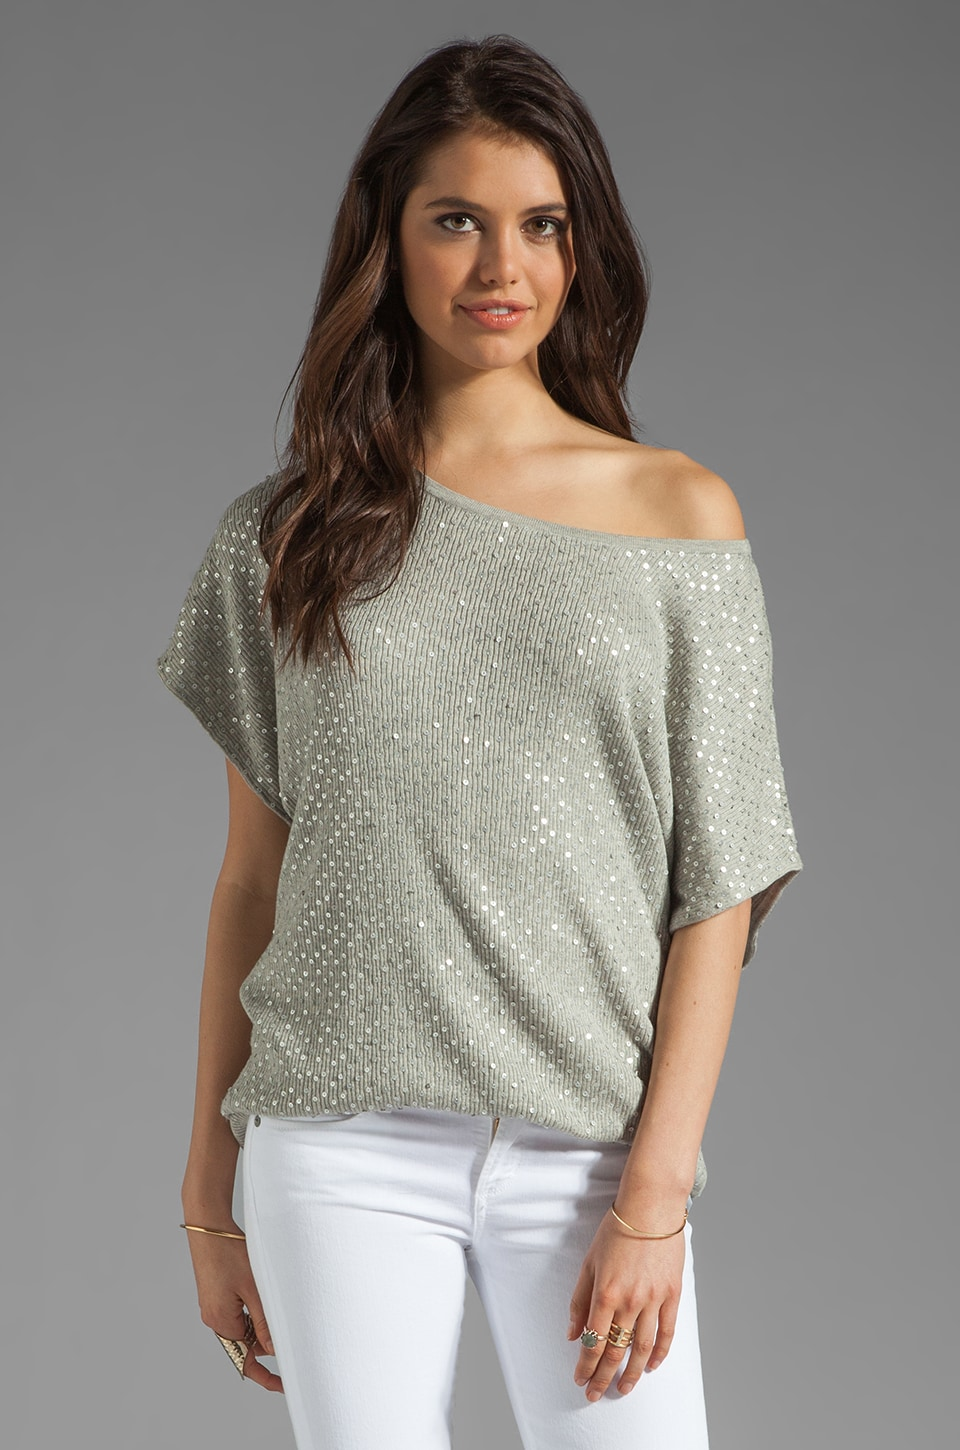 Haute Hippie Dolman Sweatshirt in Light Heather Grey/Matte Silver